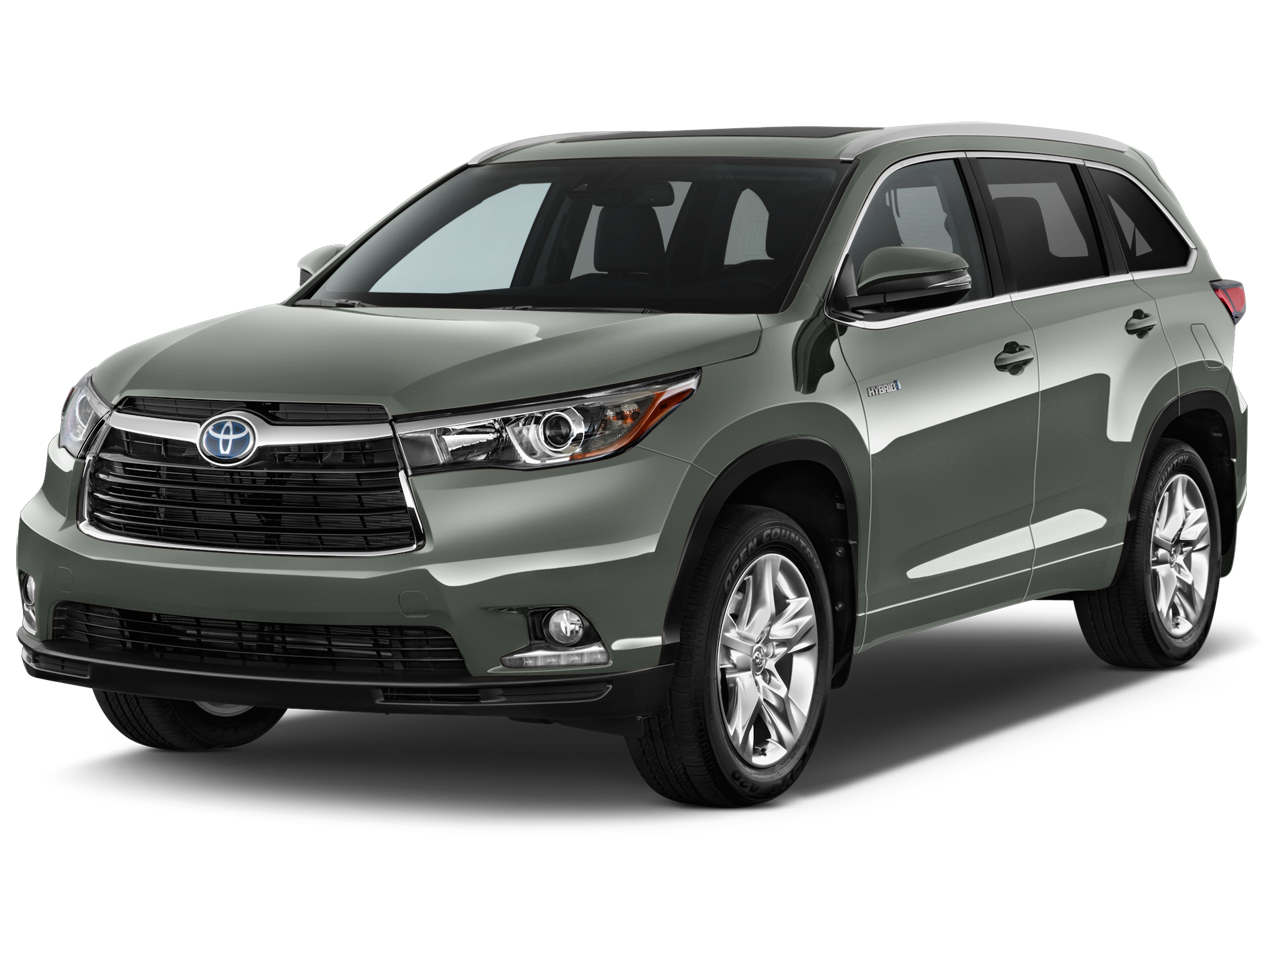 new 2016 toyota highlander hybrid limited platinum near sioux city ia rick collins toyota. Black Bedroom Furniture Sets. Home Design Ideas